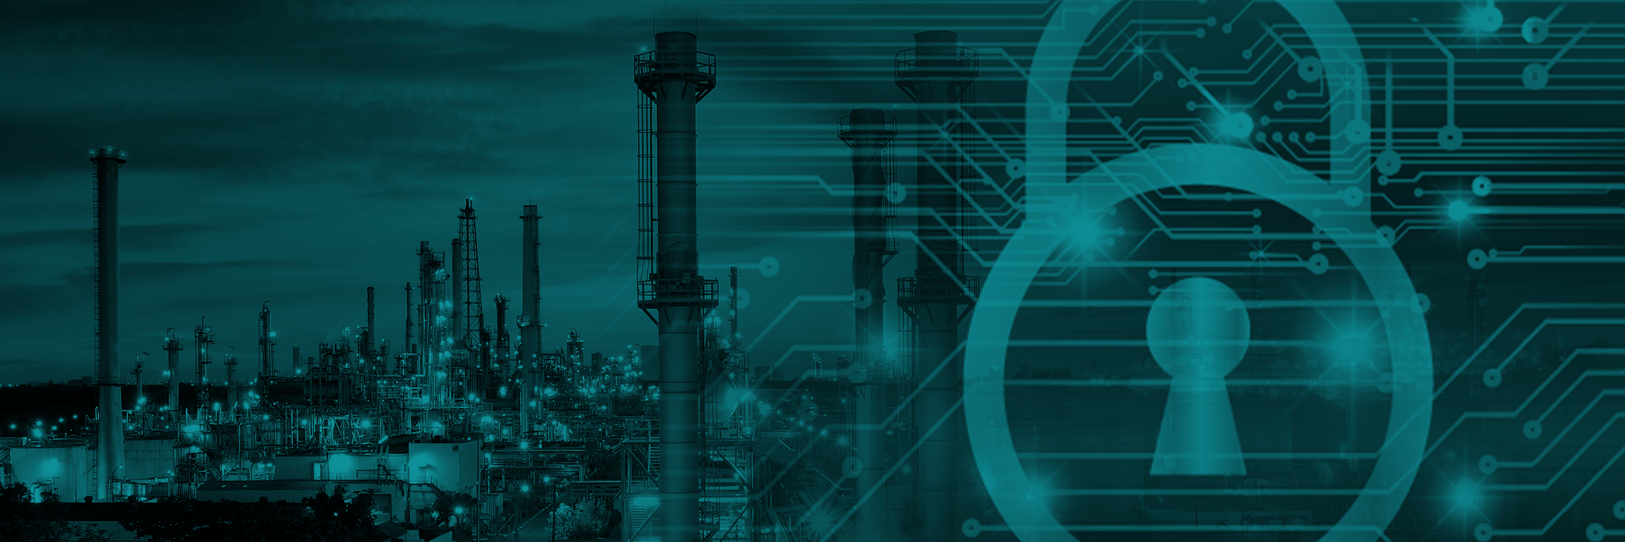 Industrial Security: Is the Air Gap Still Viable?